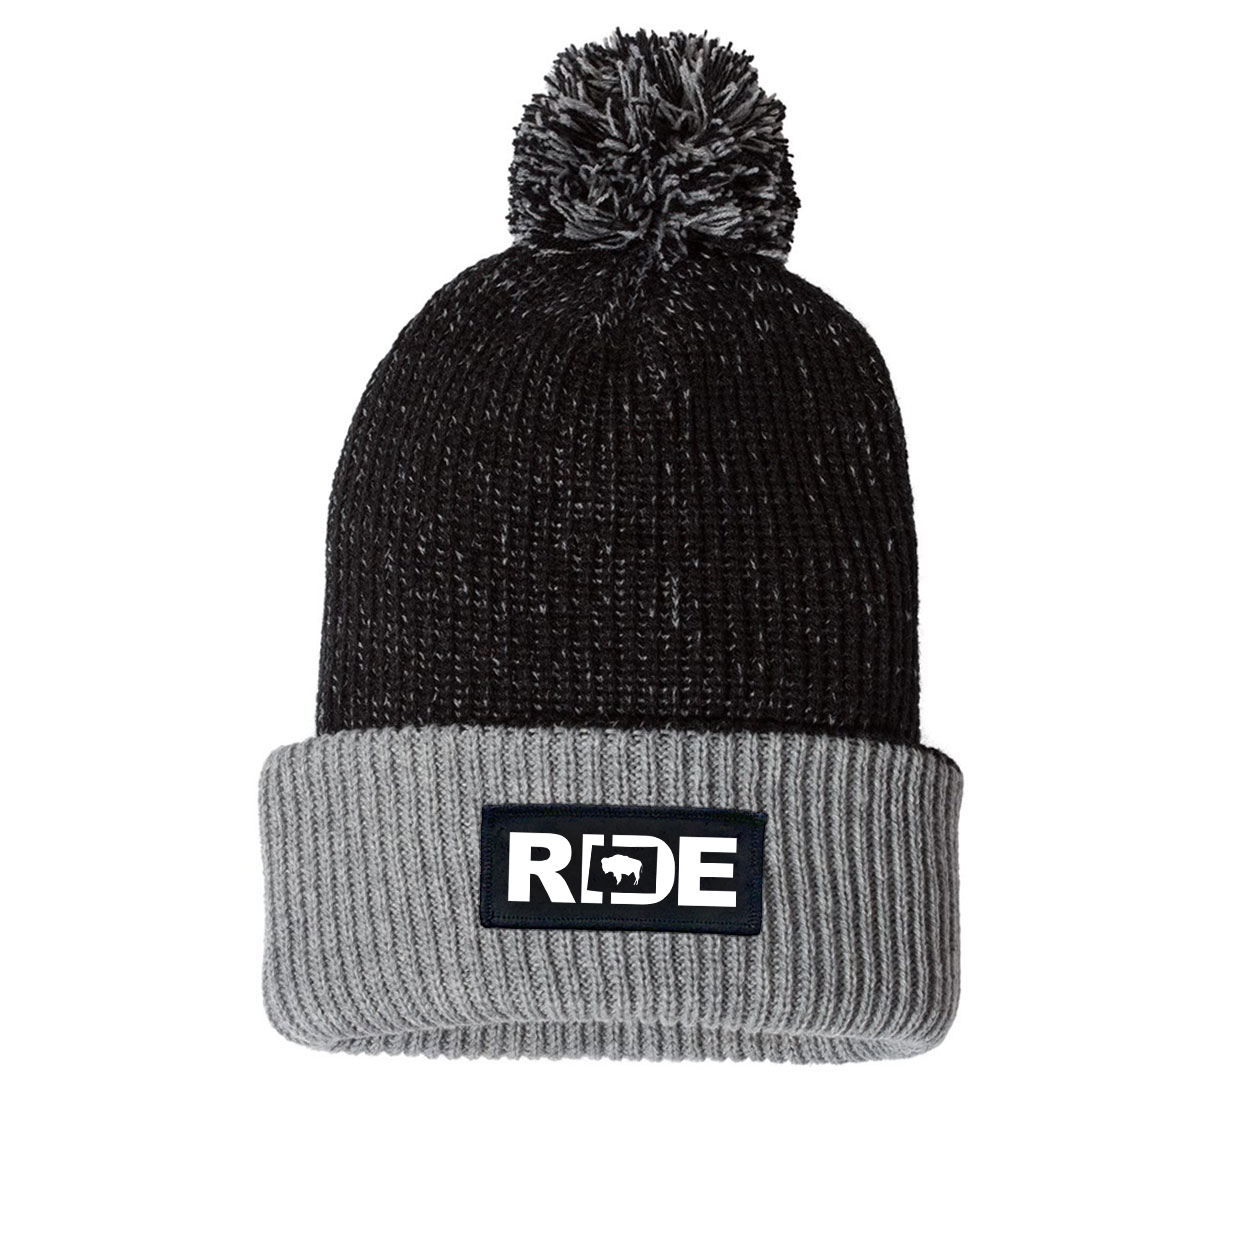 Ride Wyoming Night Out Woven Patch Roll Up Pom Knit Beanie Black/Gray (White Logo)